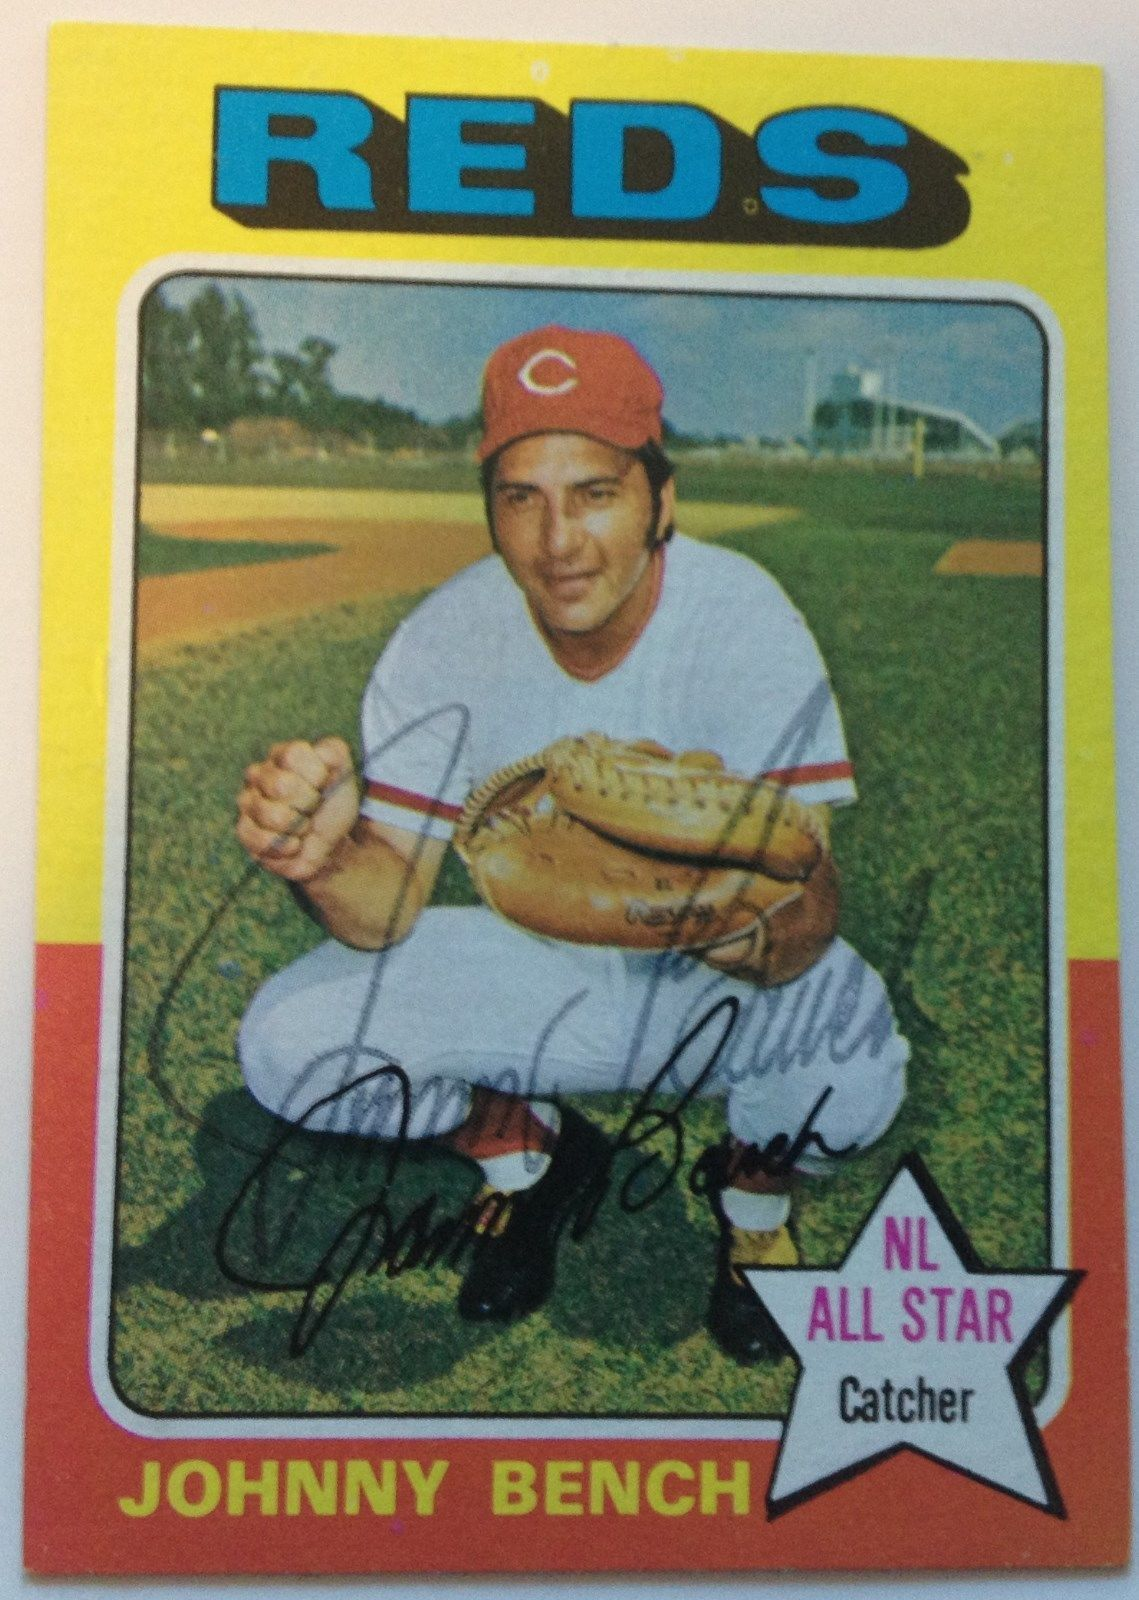 Johnny Bench Hand Autographed Baseball Card 1975 Topps